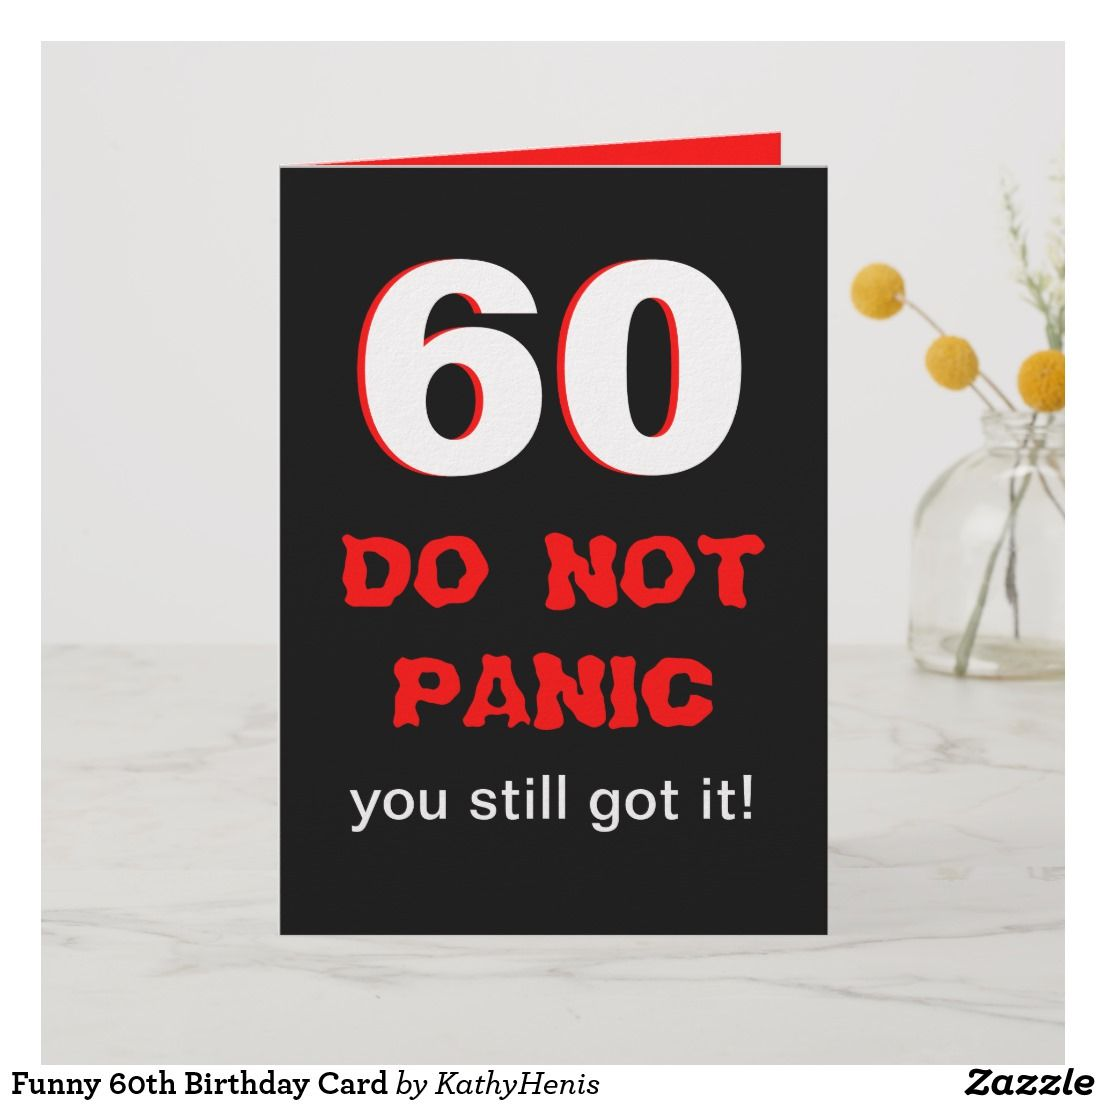 Funny 60th Birthday Card Cardsfunny Cardsgreeting Cardshappy Cardbirthday Greeting Cardsonline Cardsbirthday